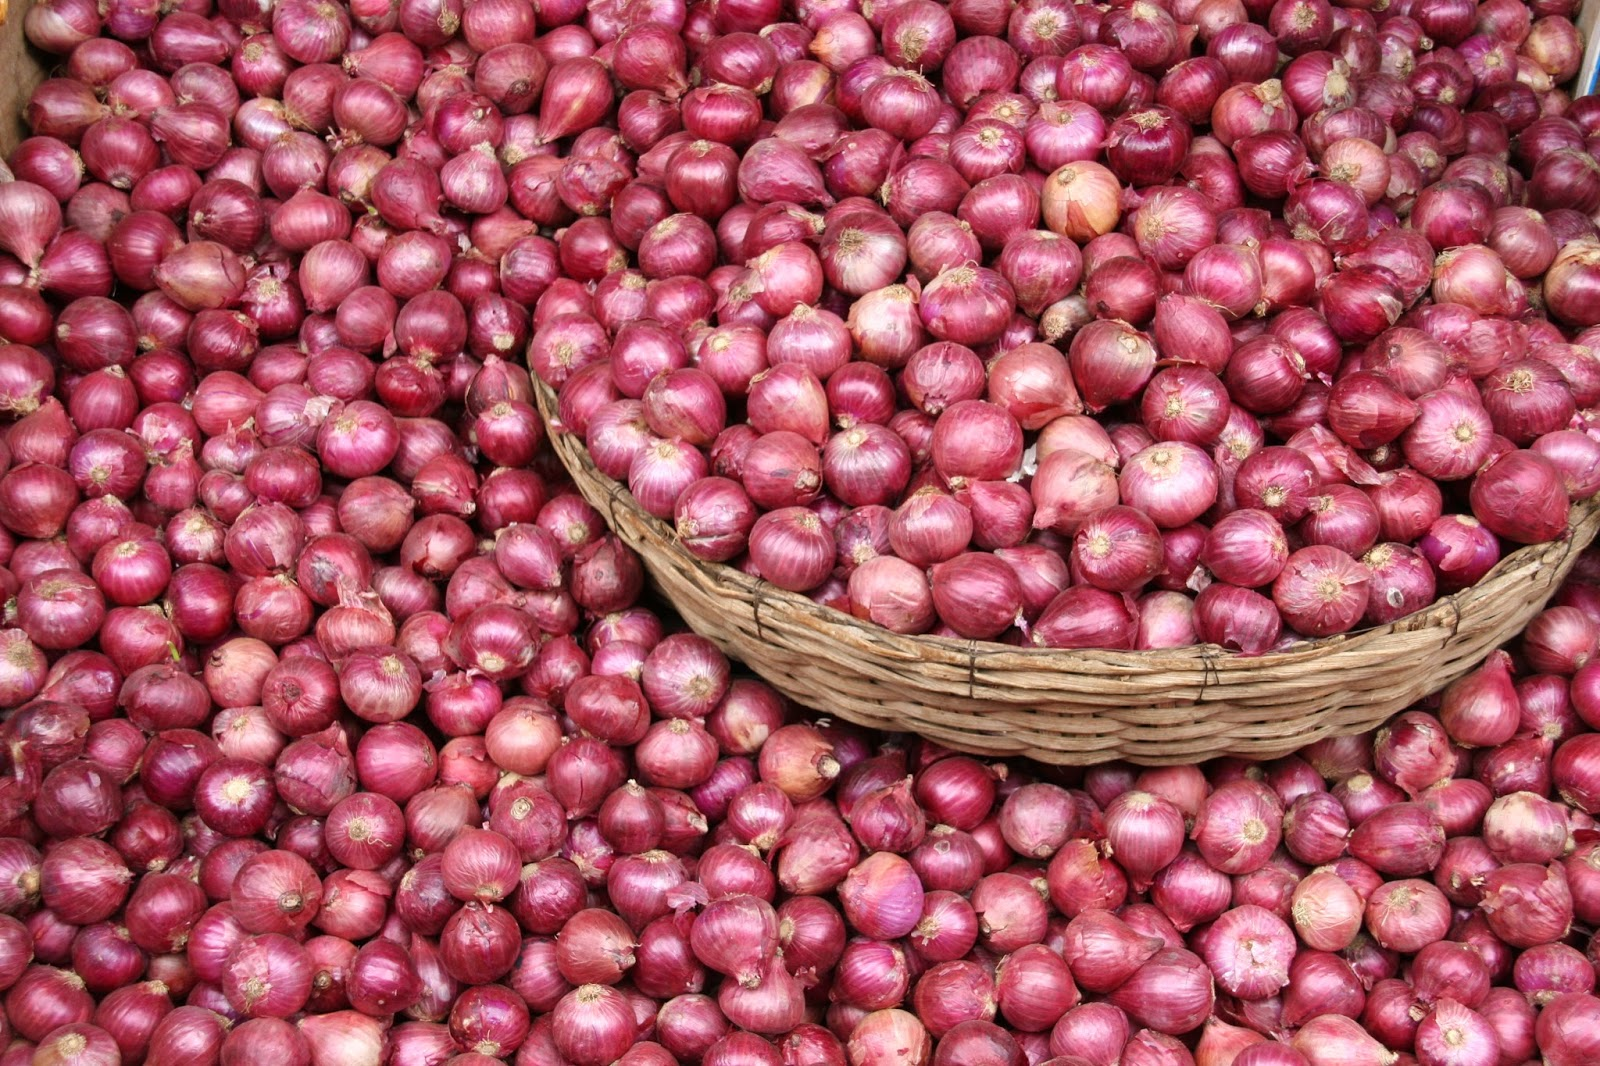 Onions Farming in Nigeria